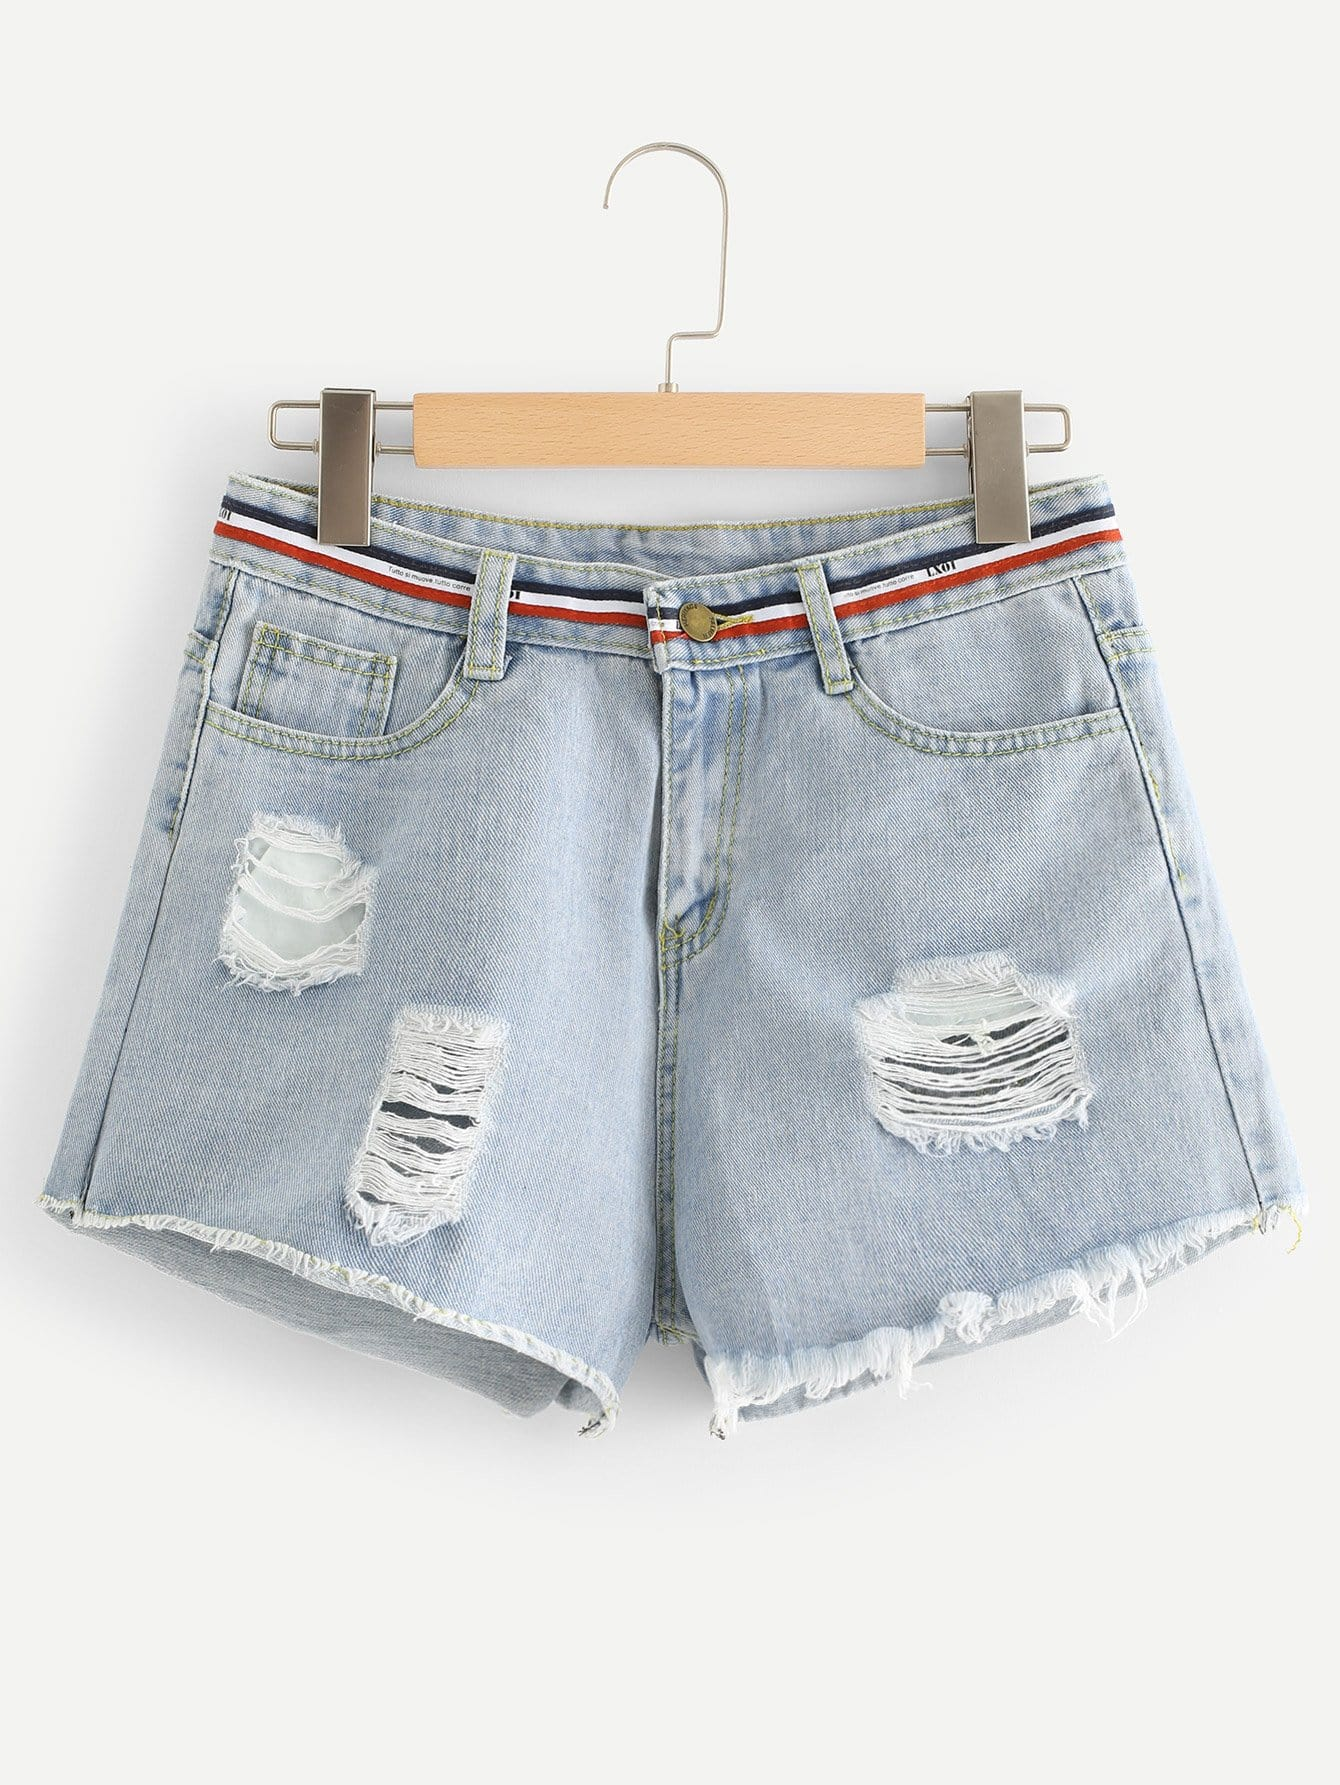 Stripe Contrast Raw Hem Ripped Denim Shorts цена